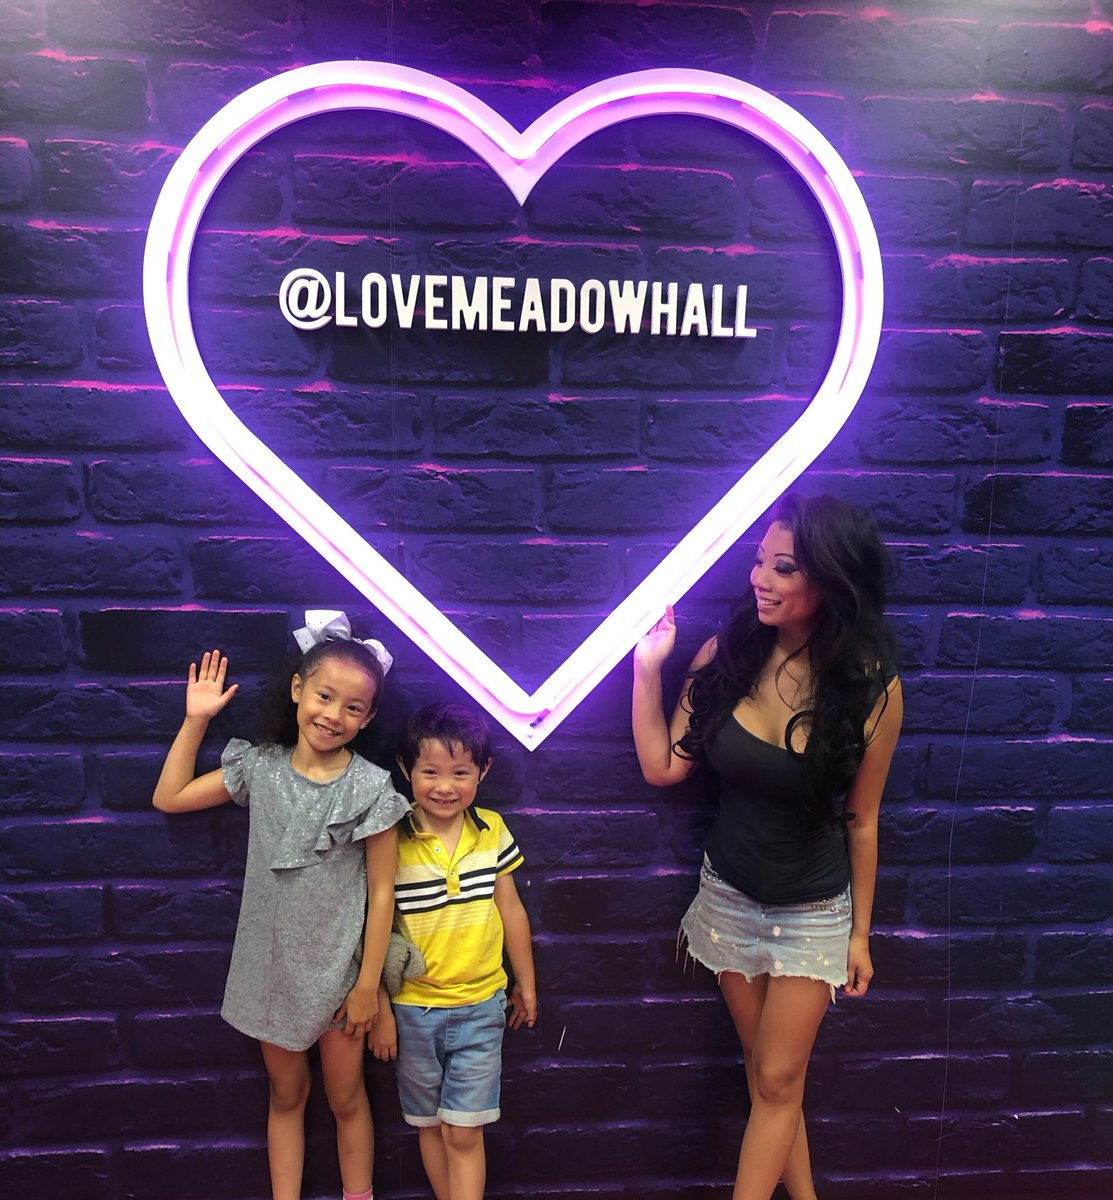 RT @chrissiewunna: Properly loved the Post Room @LoveMeadowhall today #mhpostroom #sheffieldissuper https://t.co/T3gGbwxxBY